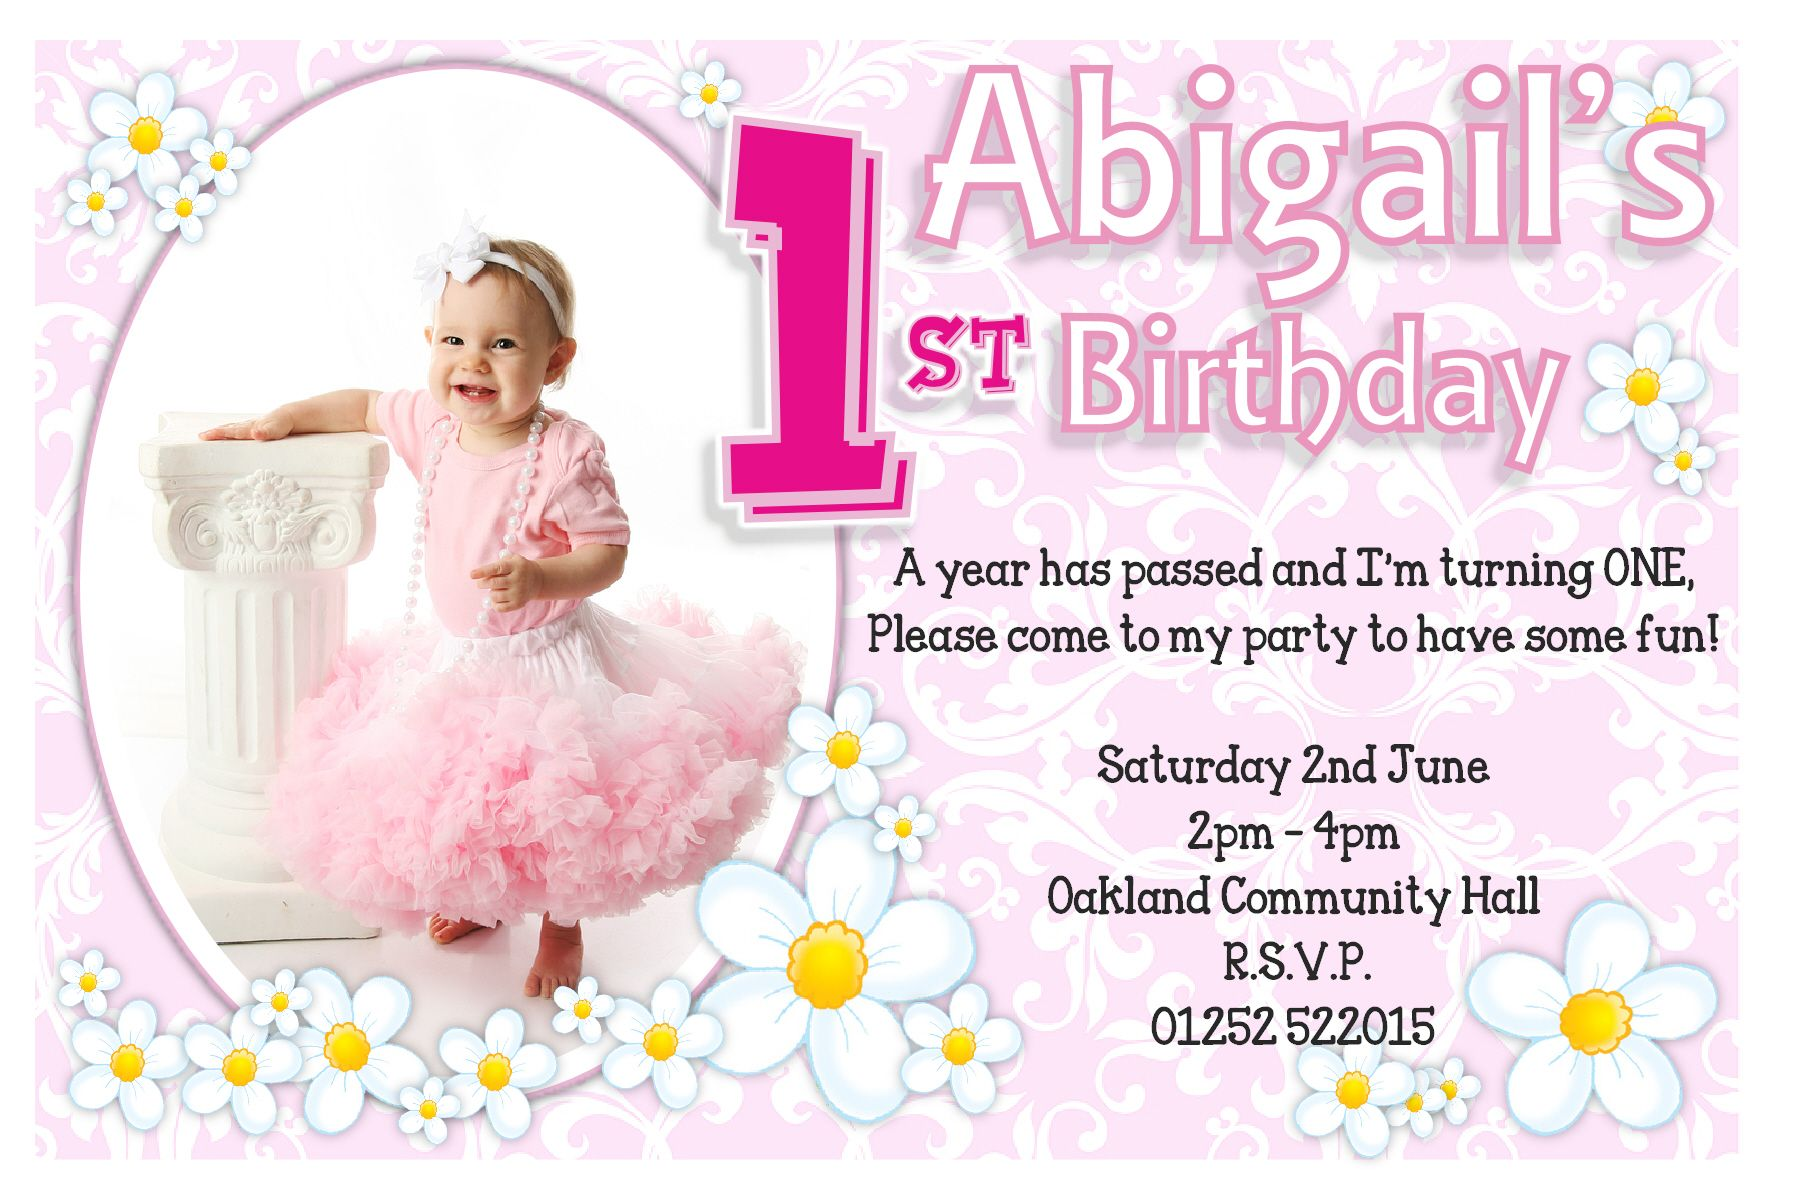 1st Birthday Party Invitations Template for Girl